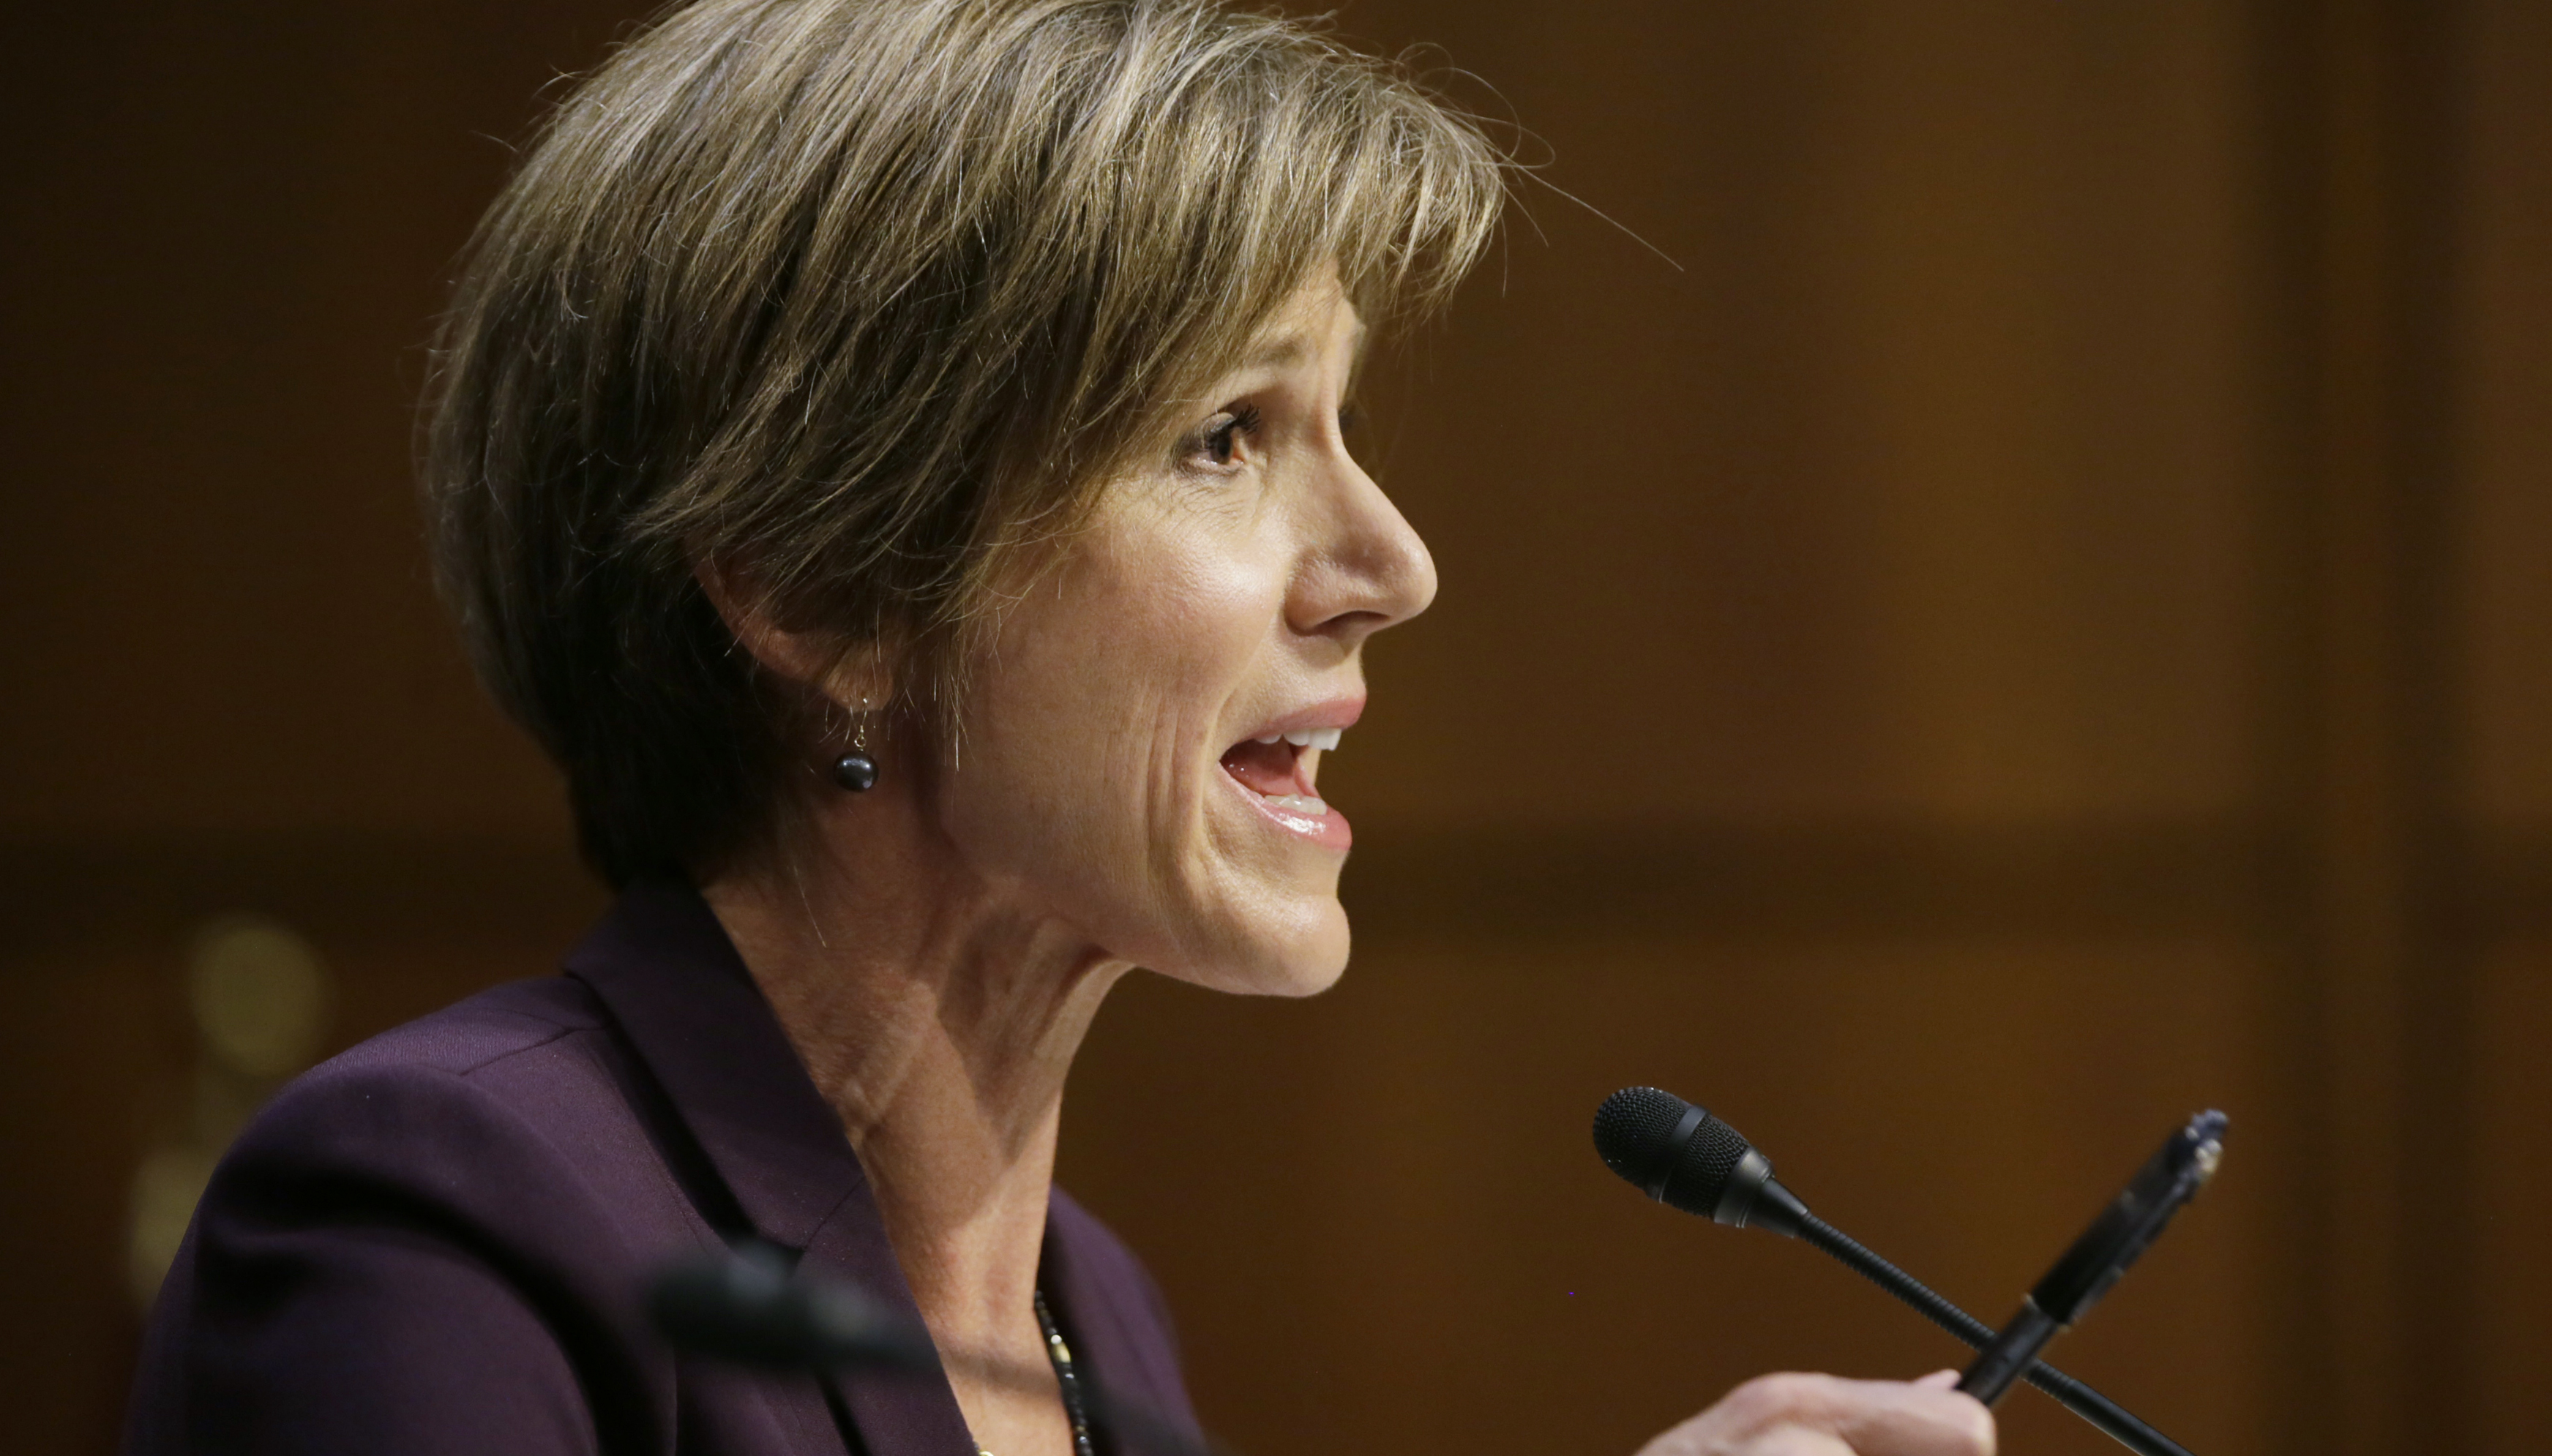 Former Deputy Attorney General Sally Yates testifies before a Senate Judiciary Committee hearing on ìRussian interference in the 2016 U.S. electionî on Capitol Hill in Washington, U .S., May 8, 2017. REUTERS/Jim Bourg - RTS15QAL